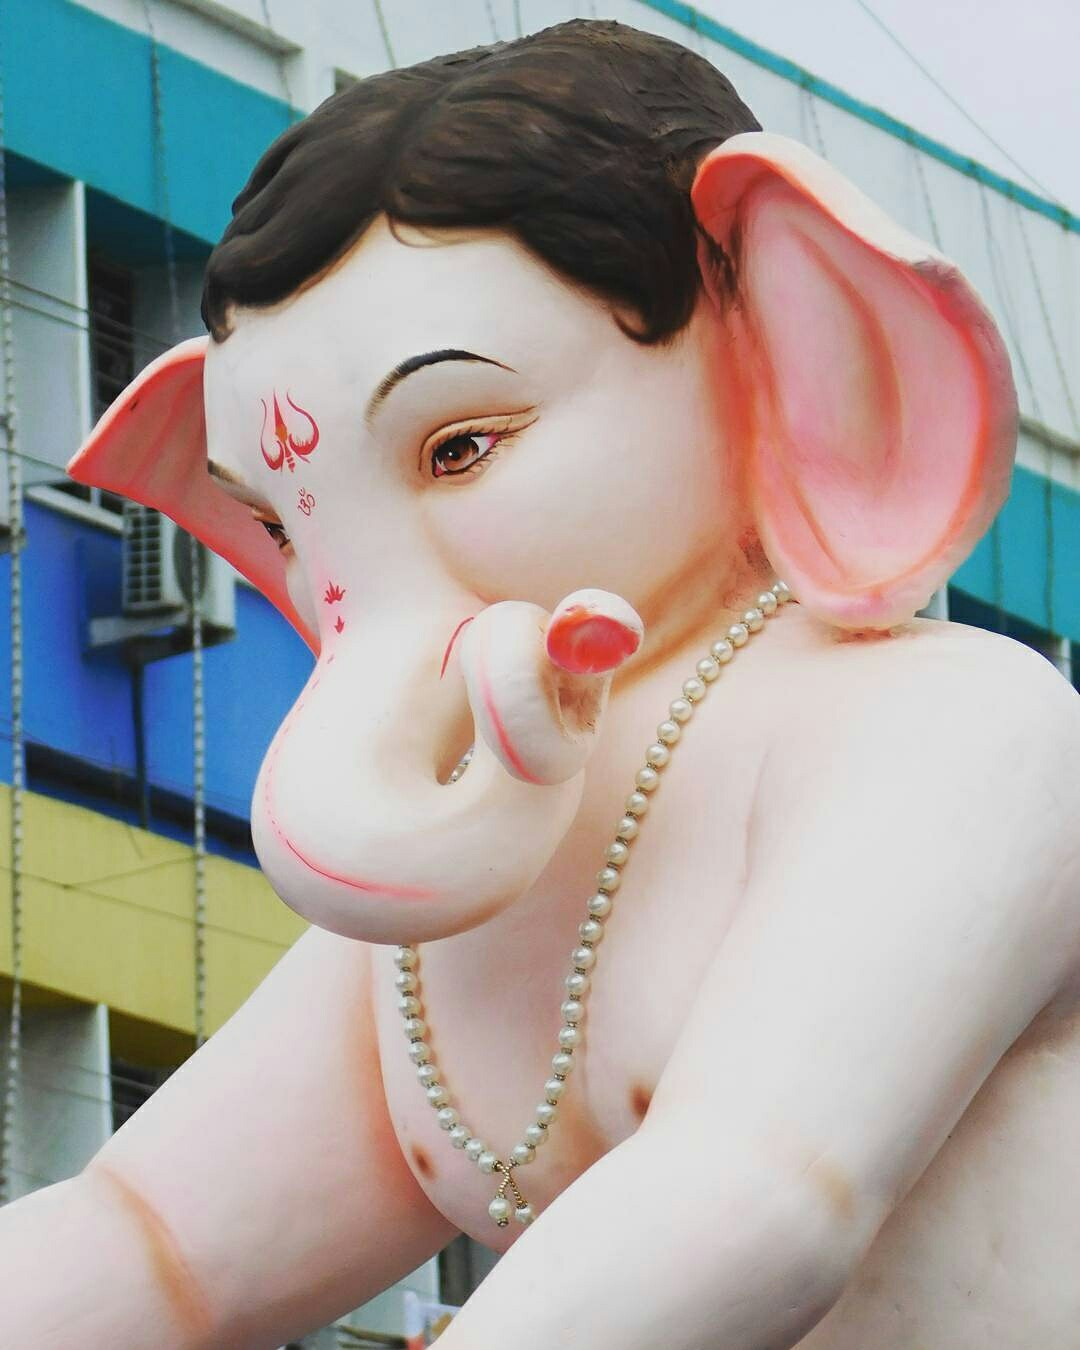 Bappa-wallpaper-wp300616